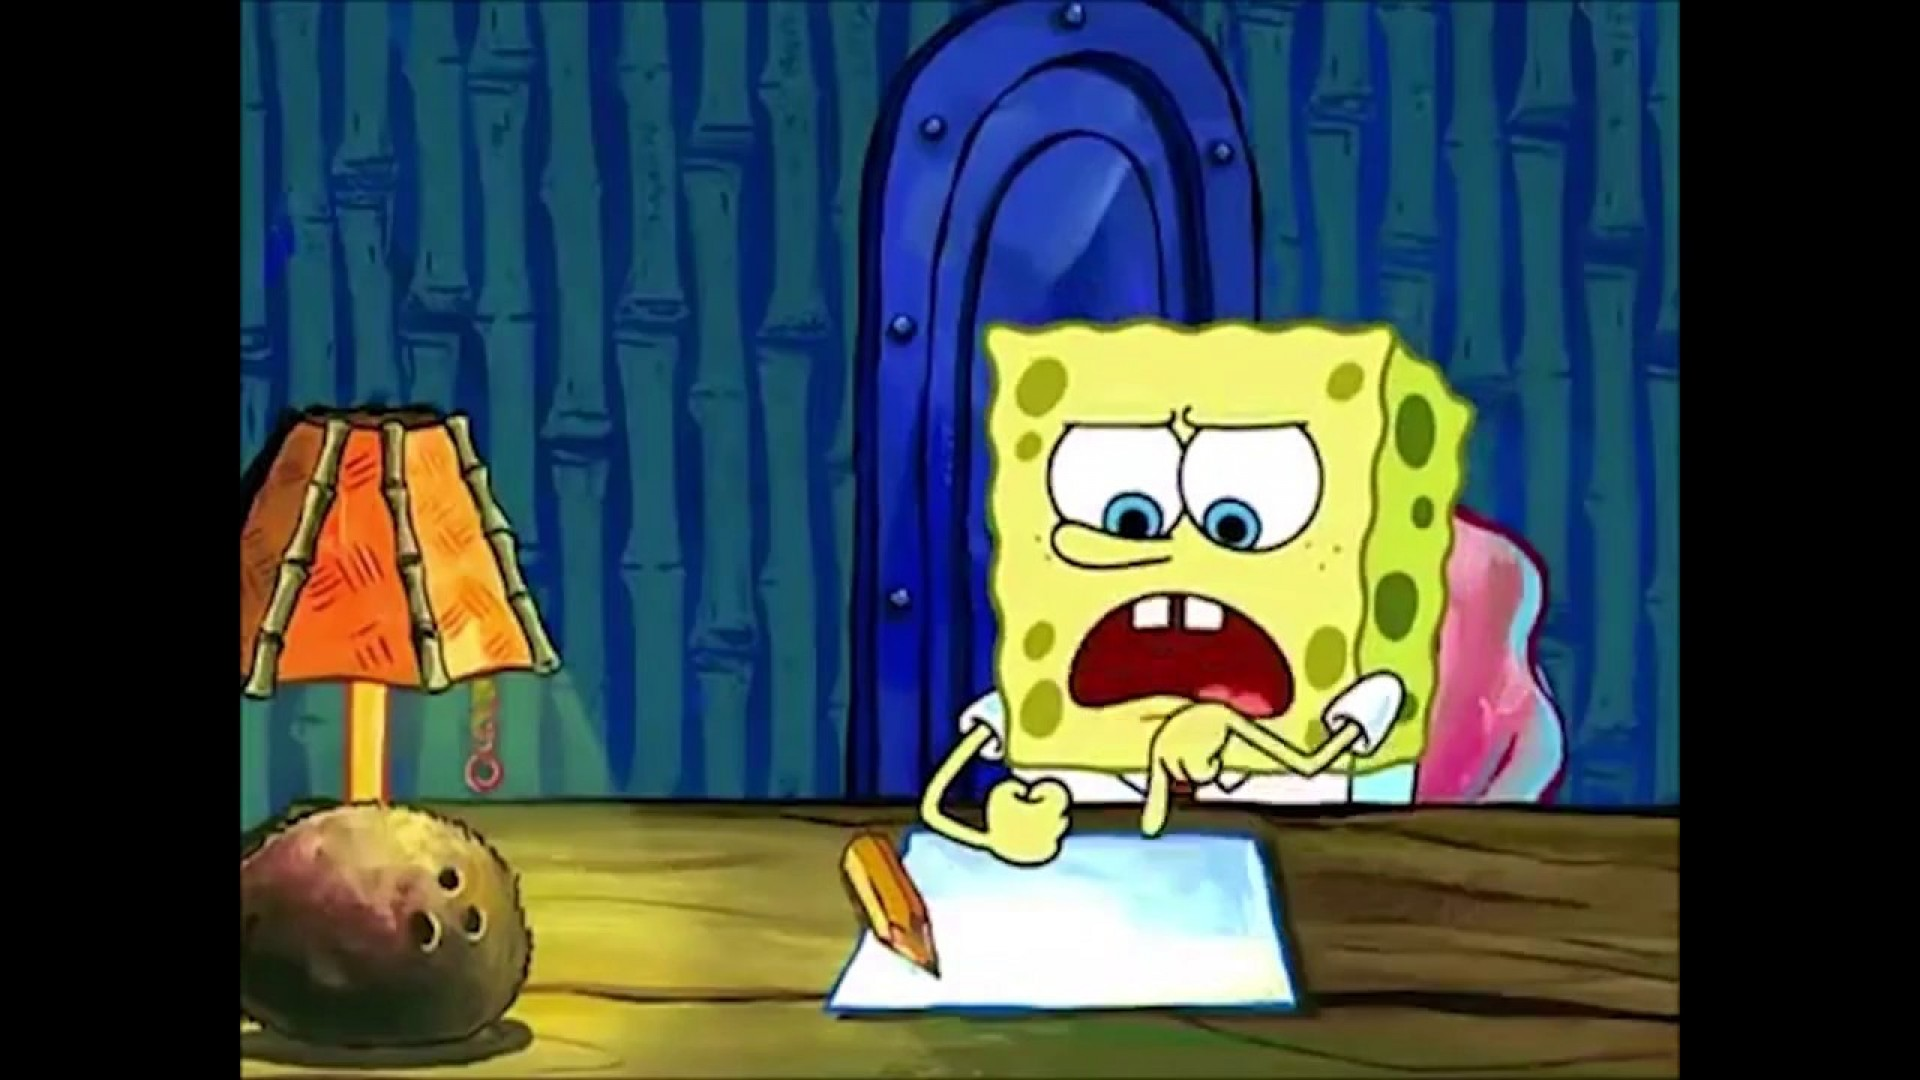 002 Essay Example Spongebob Spongebobs Youtube Maxresde Writing For Hours Rap The Font Meme Surprising Pencil Quote Full Episode Scene 1920